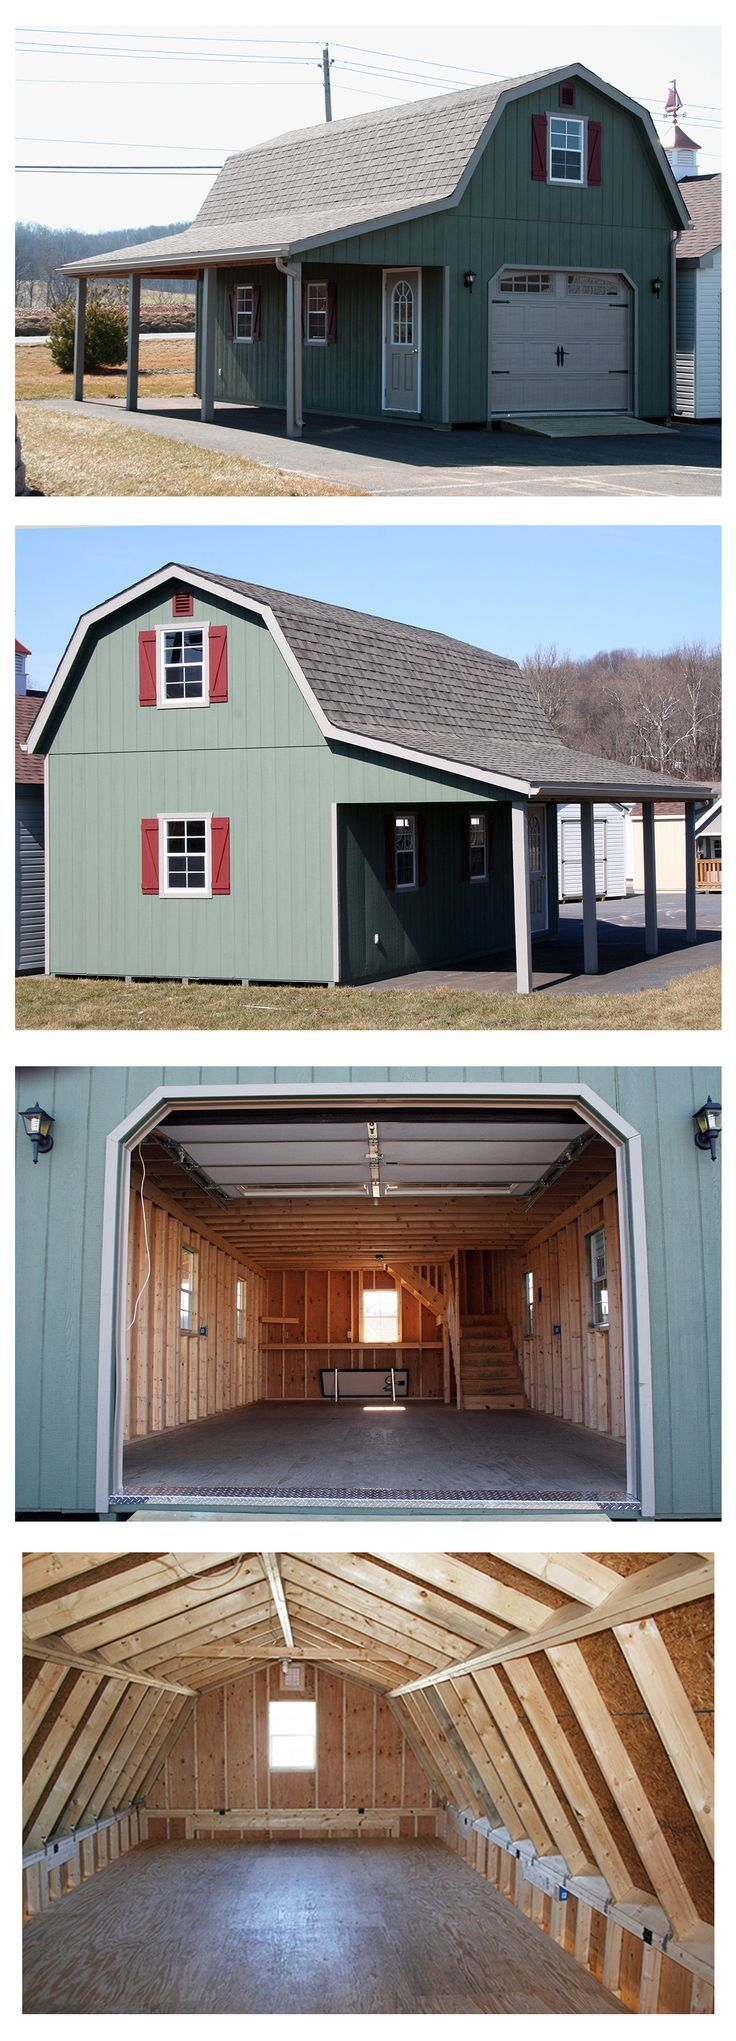 """14 wide x 28 long with an 8 overhang. The gambrel (""""barn style"""") roof maximizes storage space on the upper level. Plenty of room inside - 8 clearance on the lower level. 7&"""